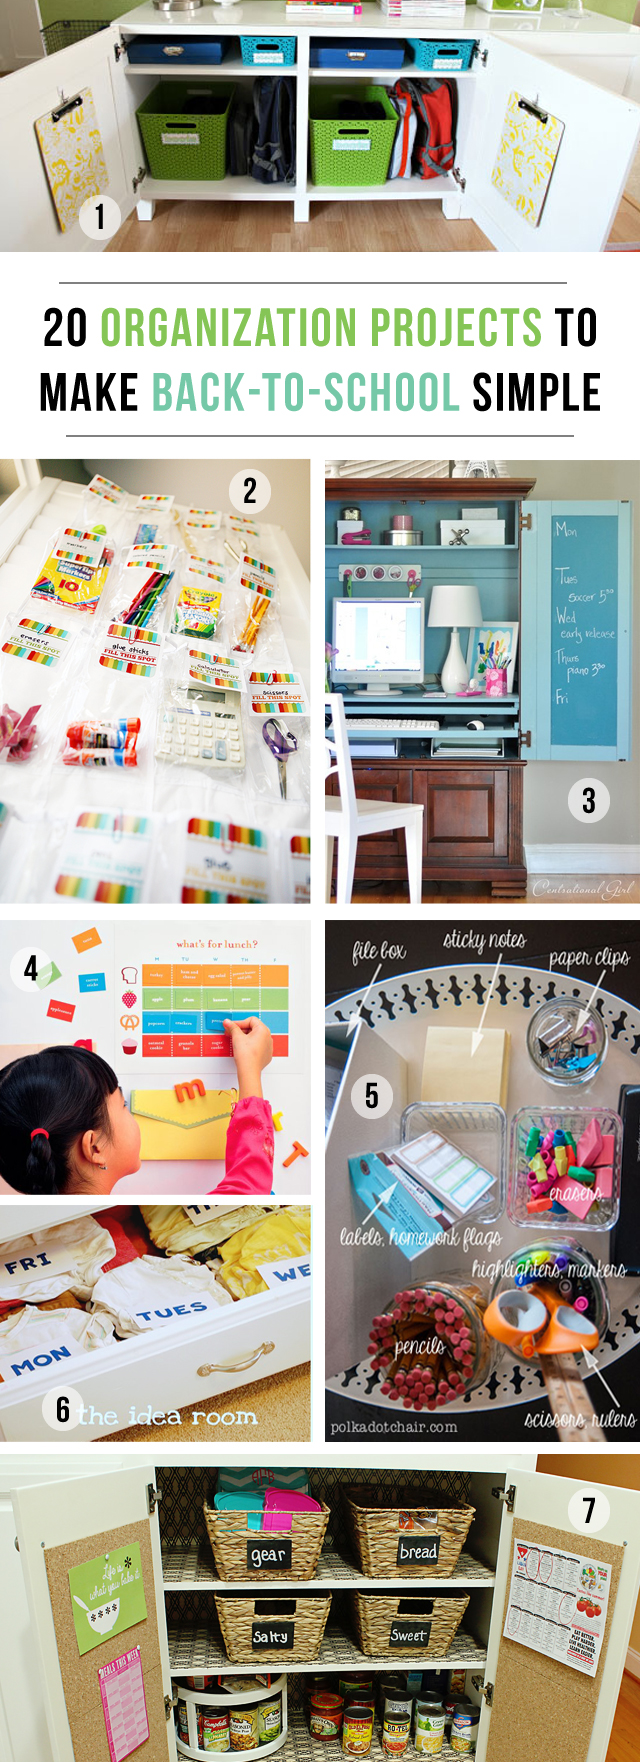 TONS of great ideas here - love the self-serve lunch stations and study spaces the most.